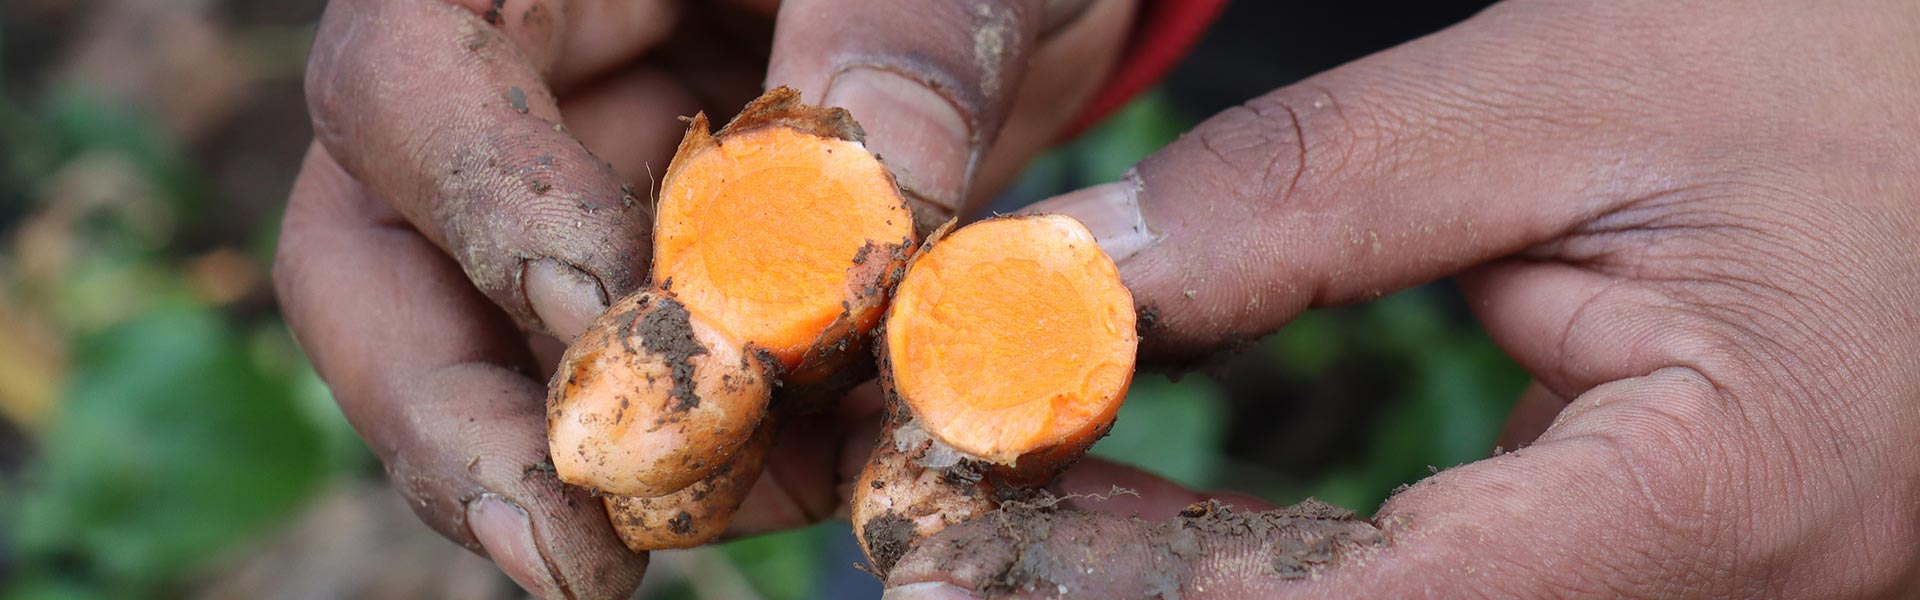 Real Lakadong or Ordinary Turmeric – Know Different Varieties of Turmeric